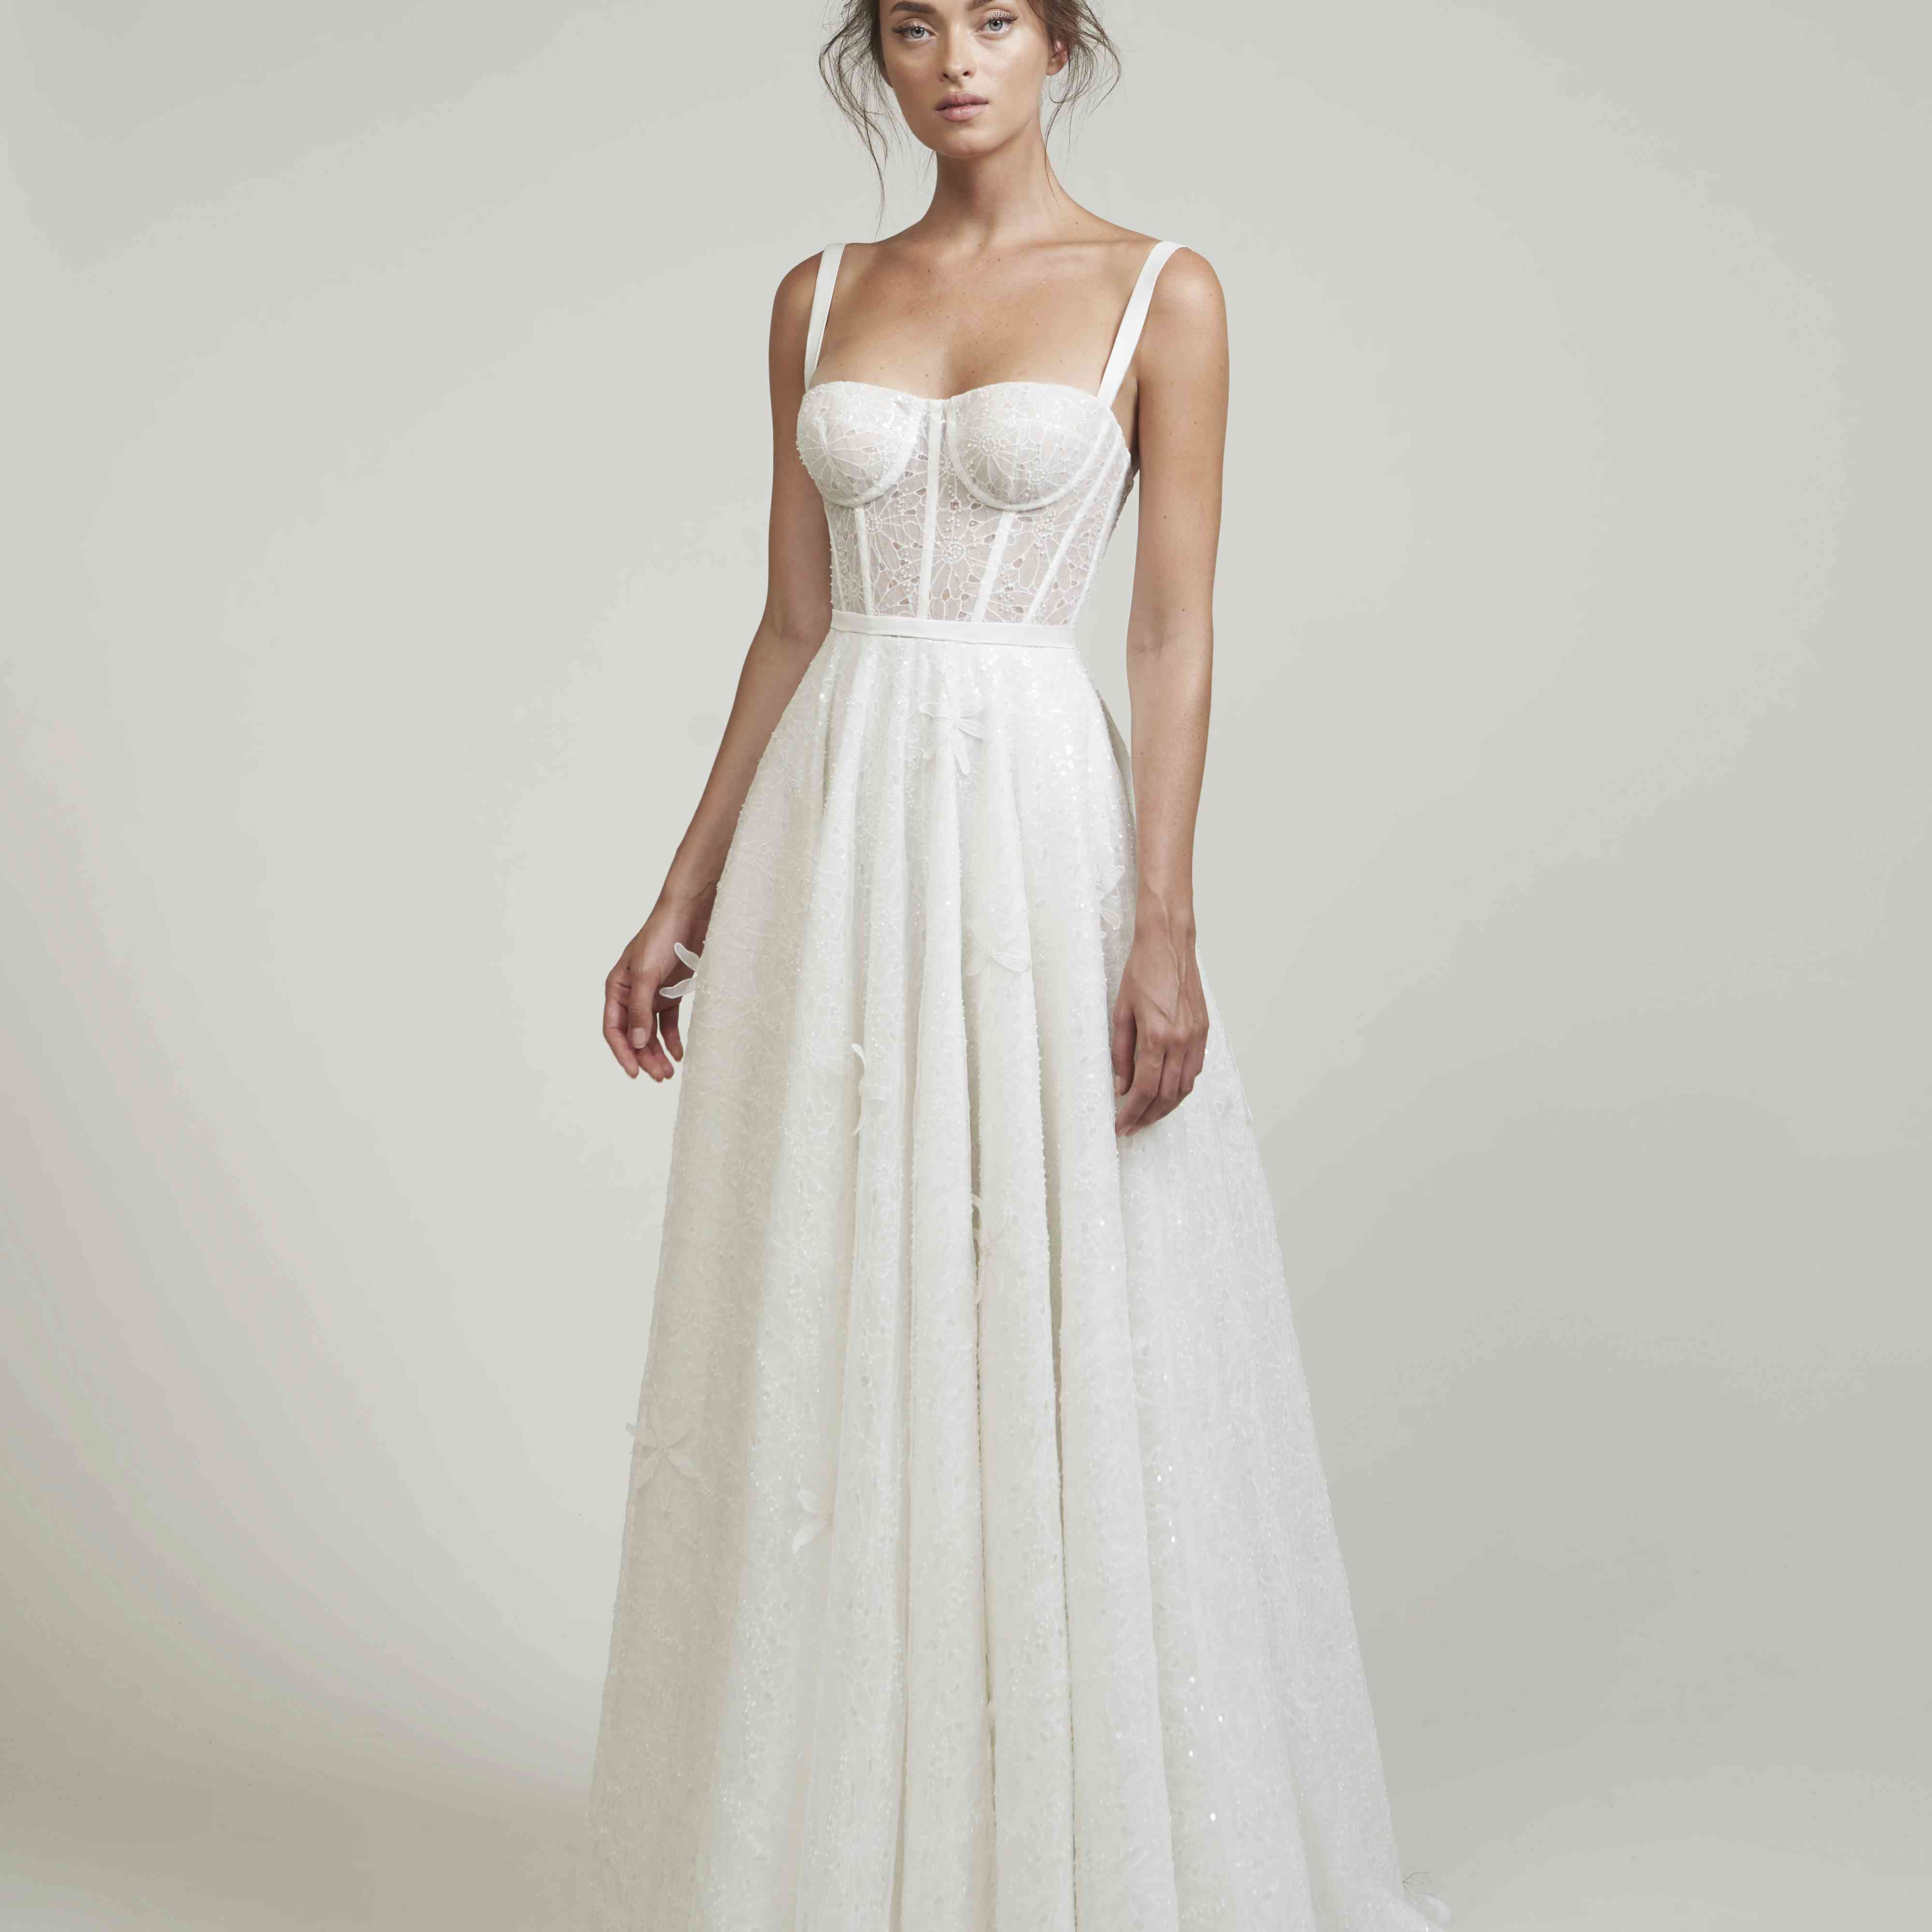 These Are The Wedding Dress Trends Our Editors Love For Fall